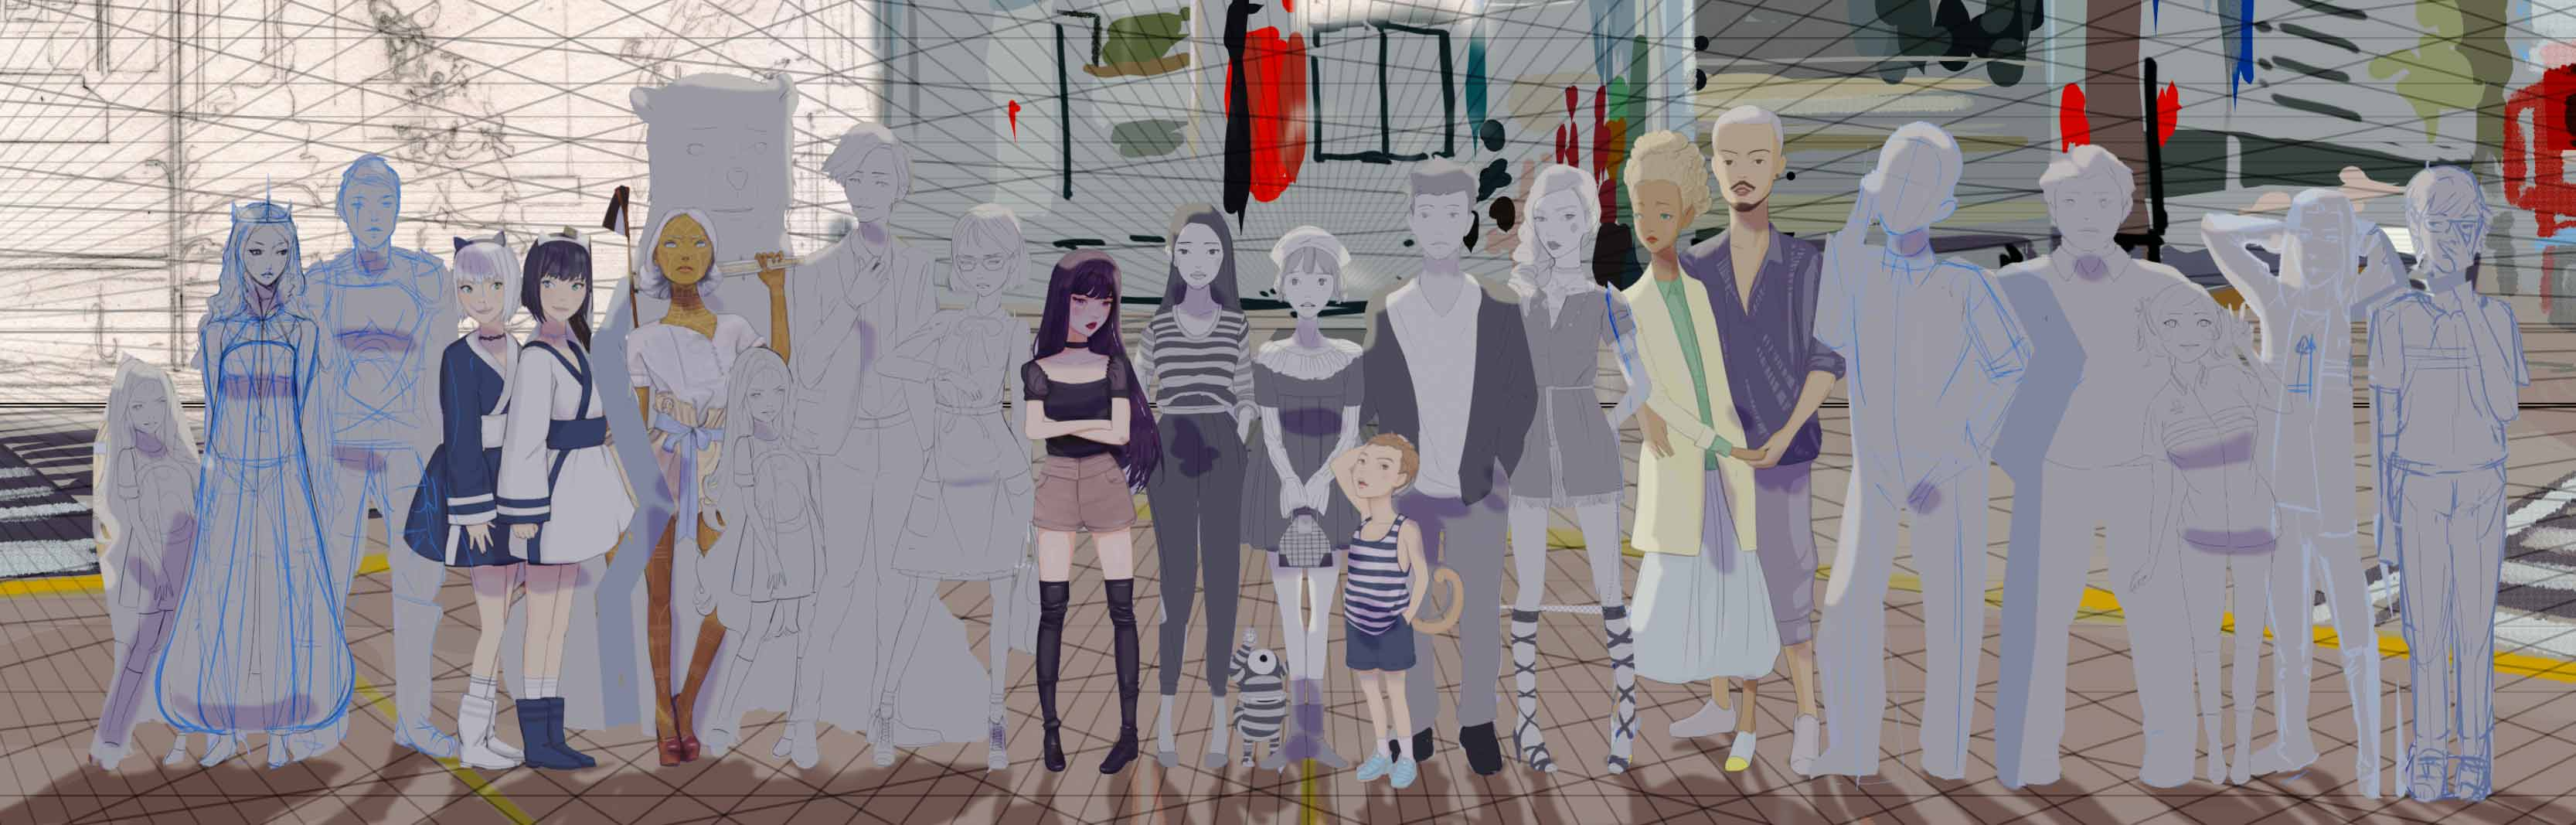 Artist Danny Roberts manga Lost in the Crowd Character Line up height Chart